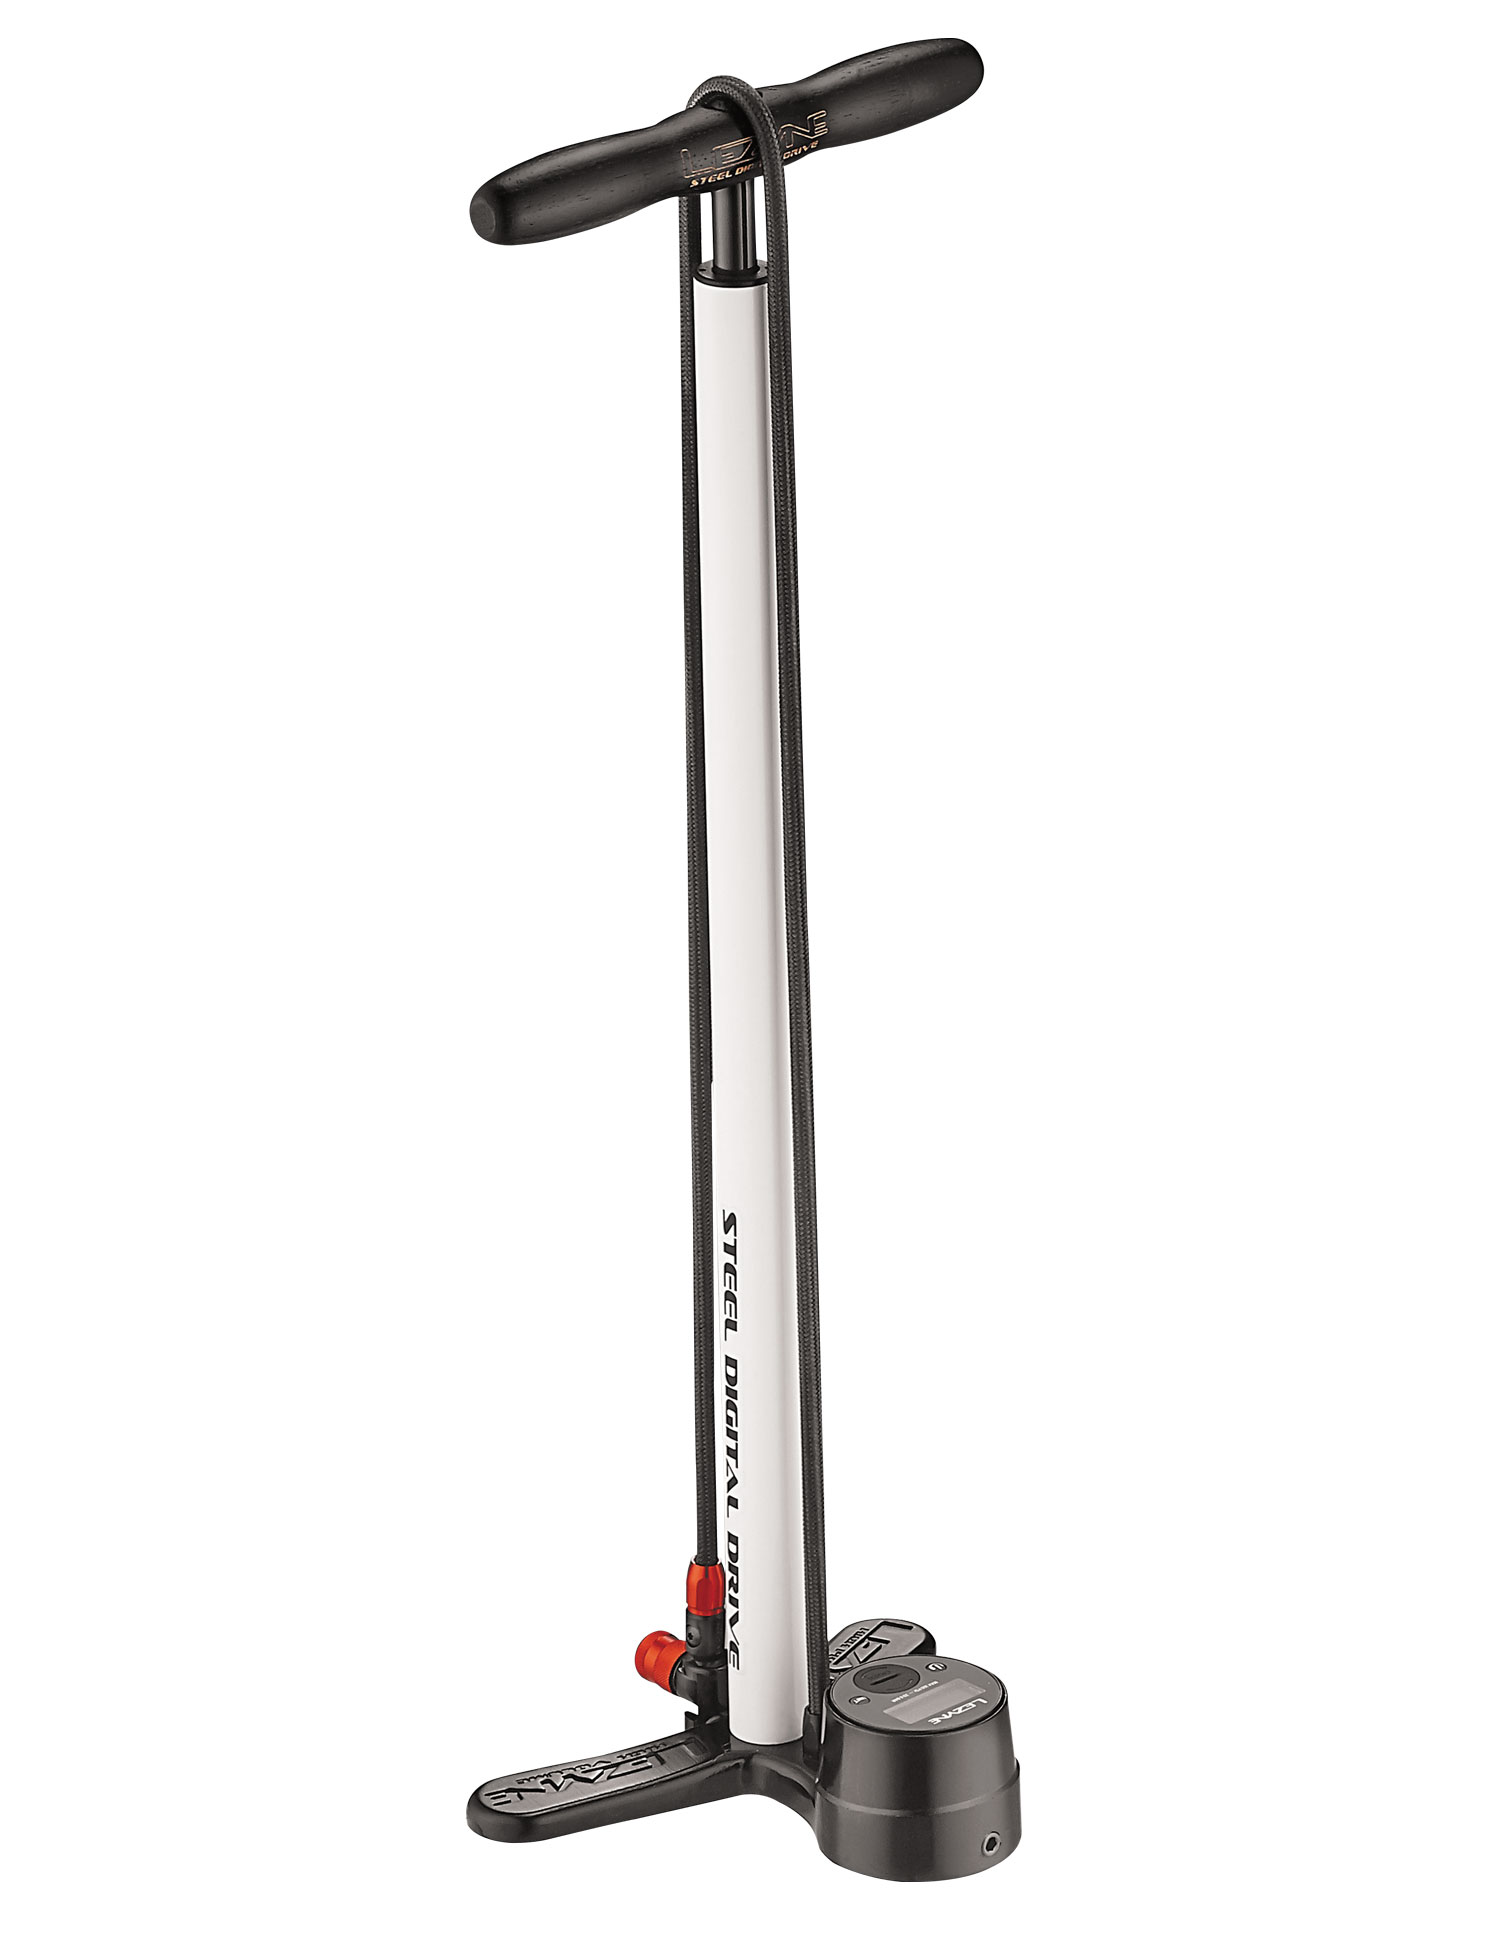 hustilka Lezyne Steel Digital Floor Drive white